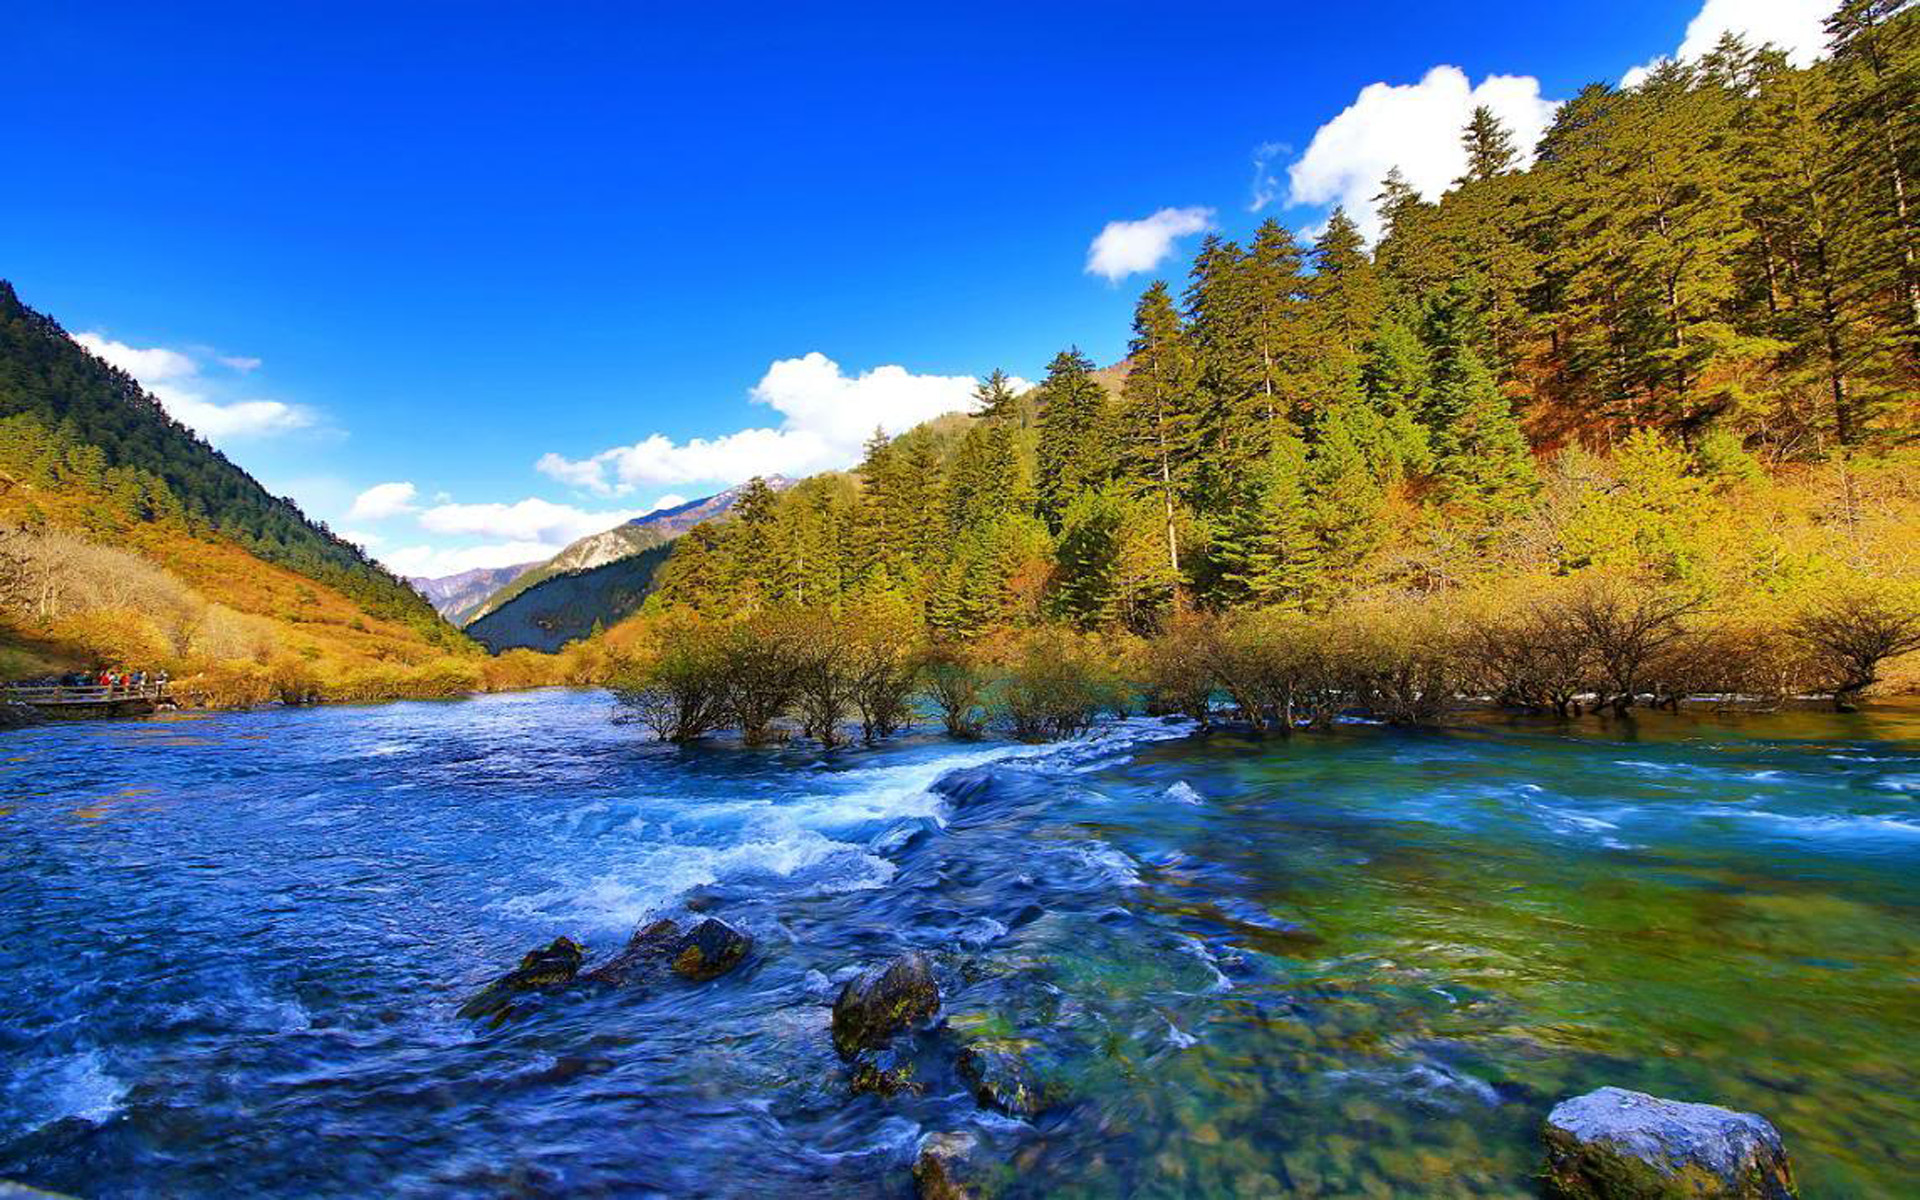 3d Amazing Art Wallpapers Jiuzhai Valley National Park Jiuzhaigou China Mountain